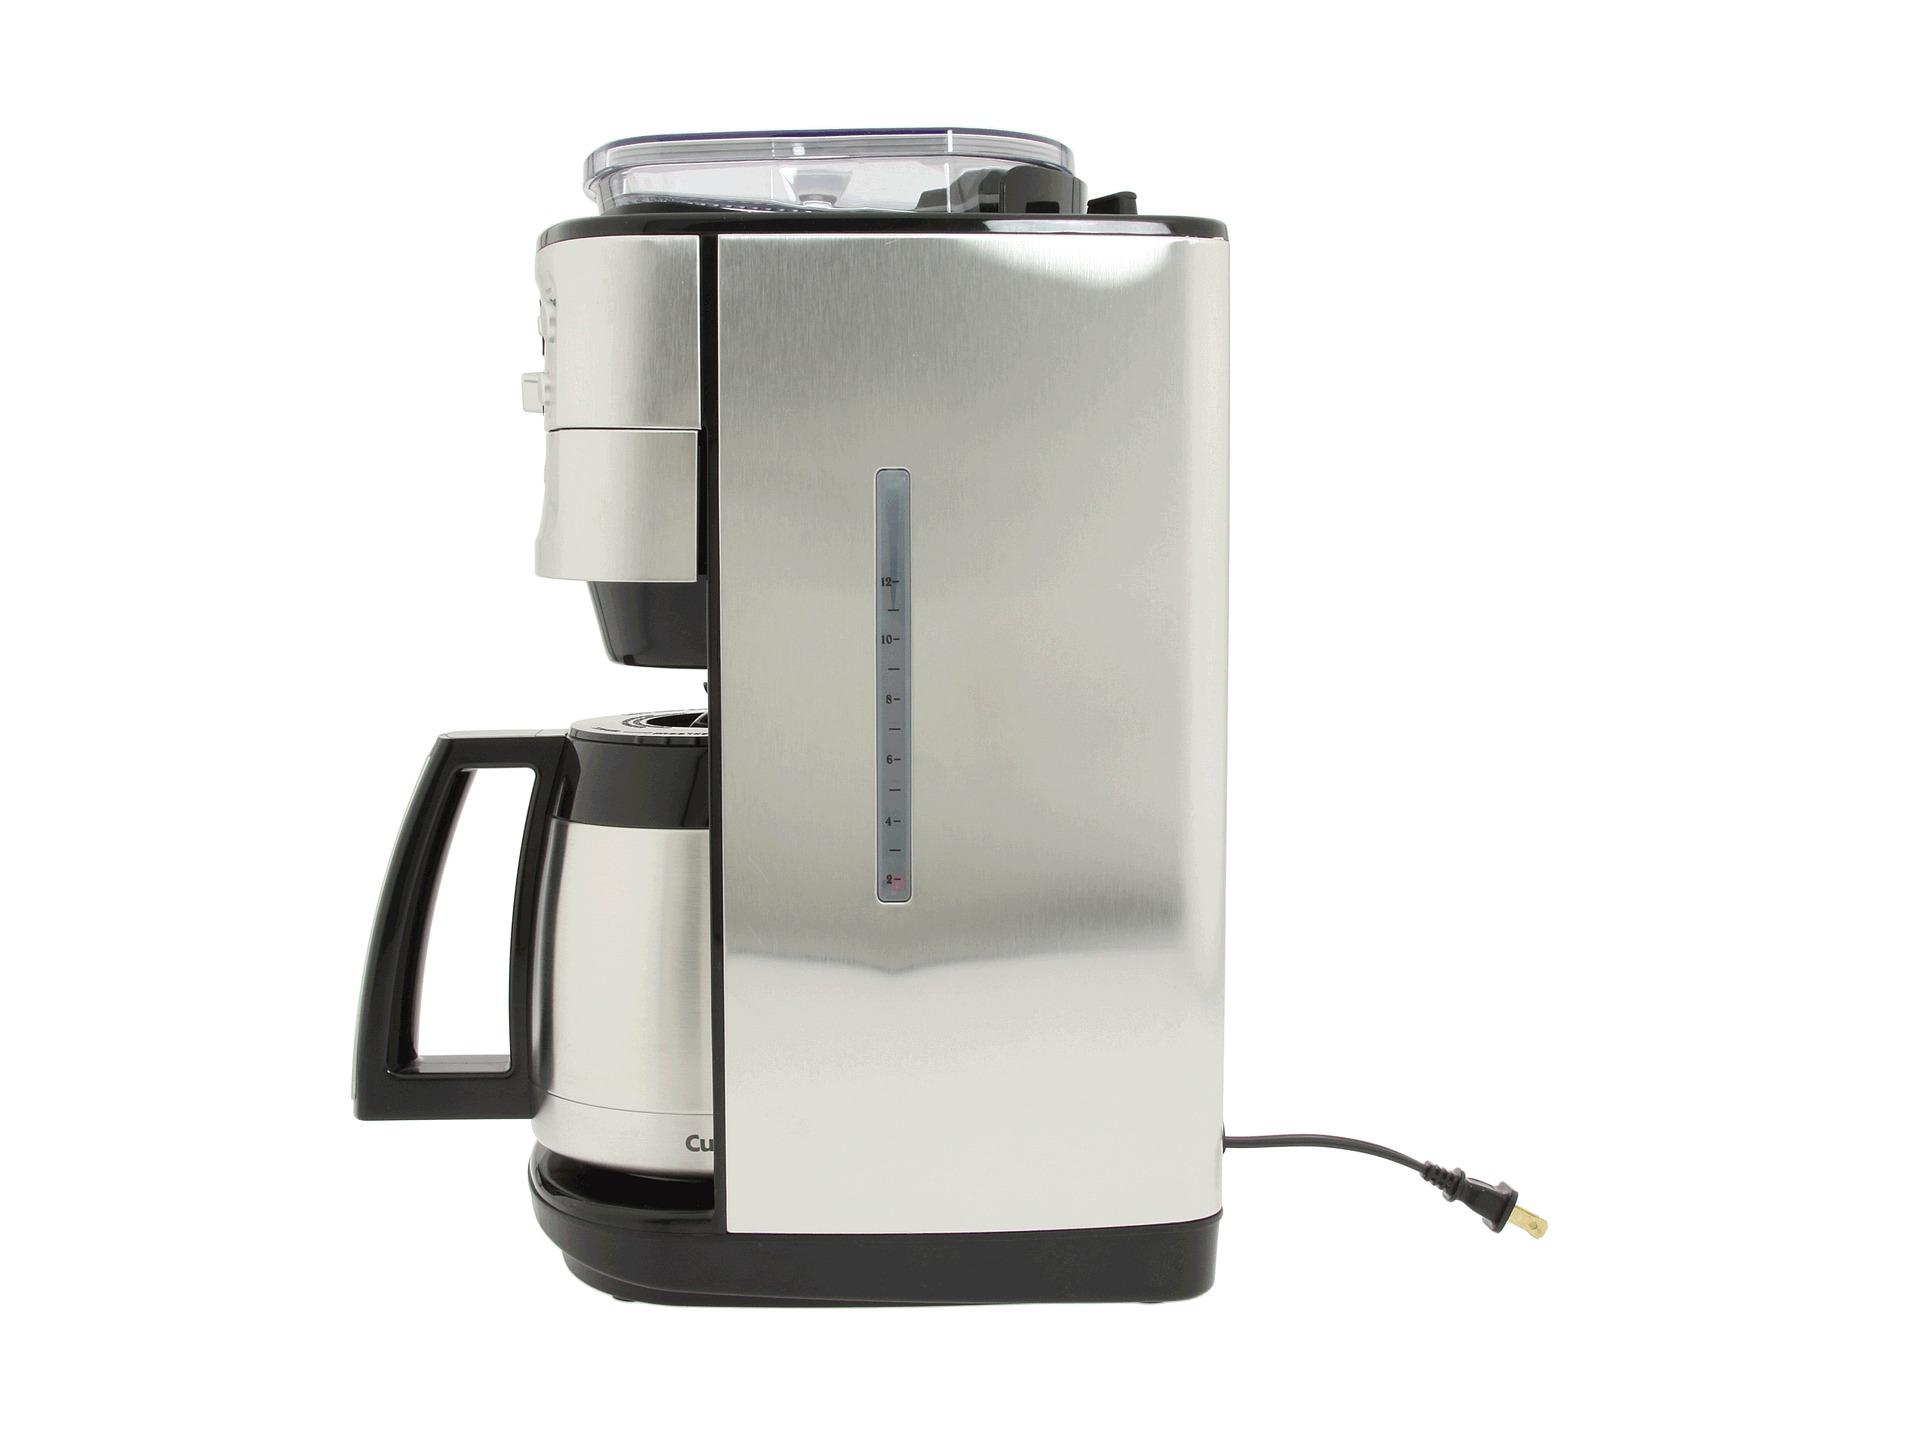 Cuisinart Coffee Maker With Grinder Not Working : Cuisinart Dgb 900bc Grind Brew Thermal 12 Cup Coffee Maker Shipped Free at Zappos